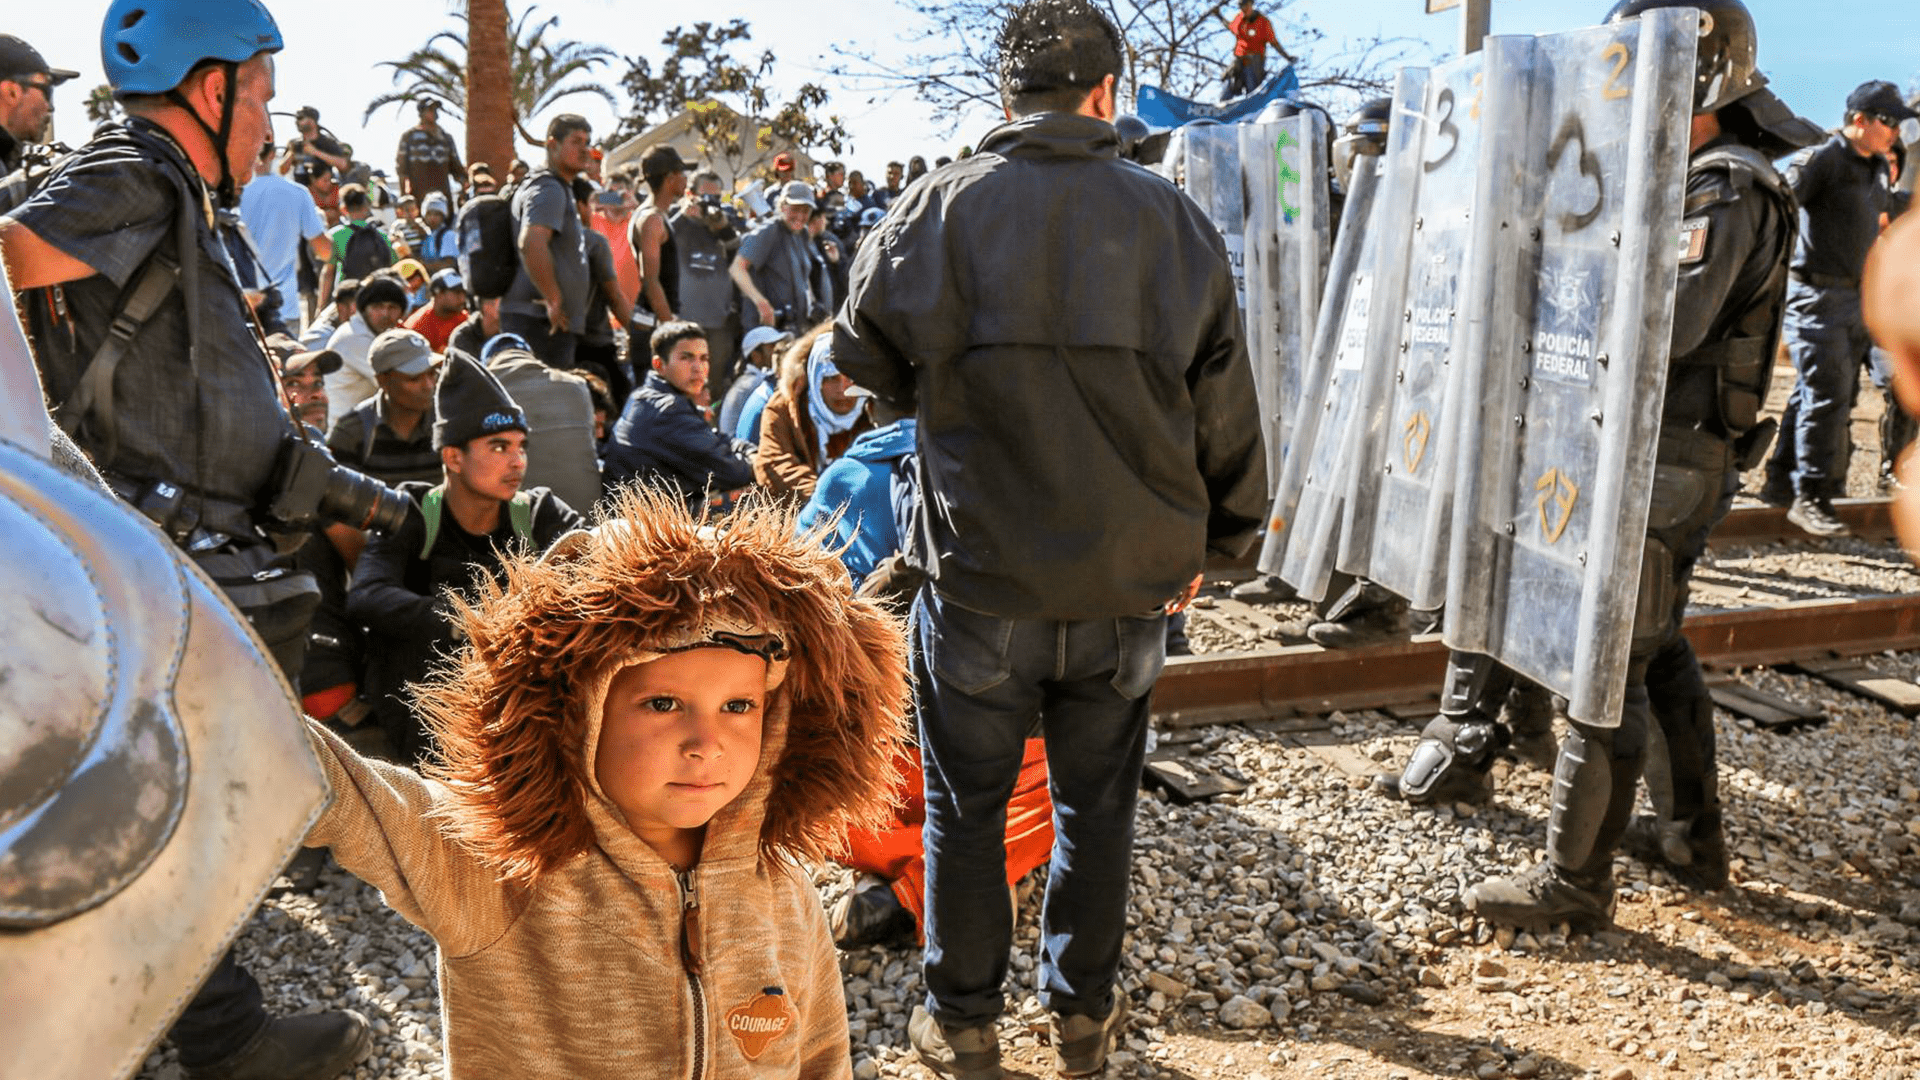 Tear Gas at Border as Asylum Seekers Attempt to Cross